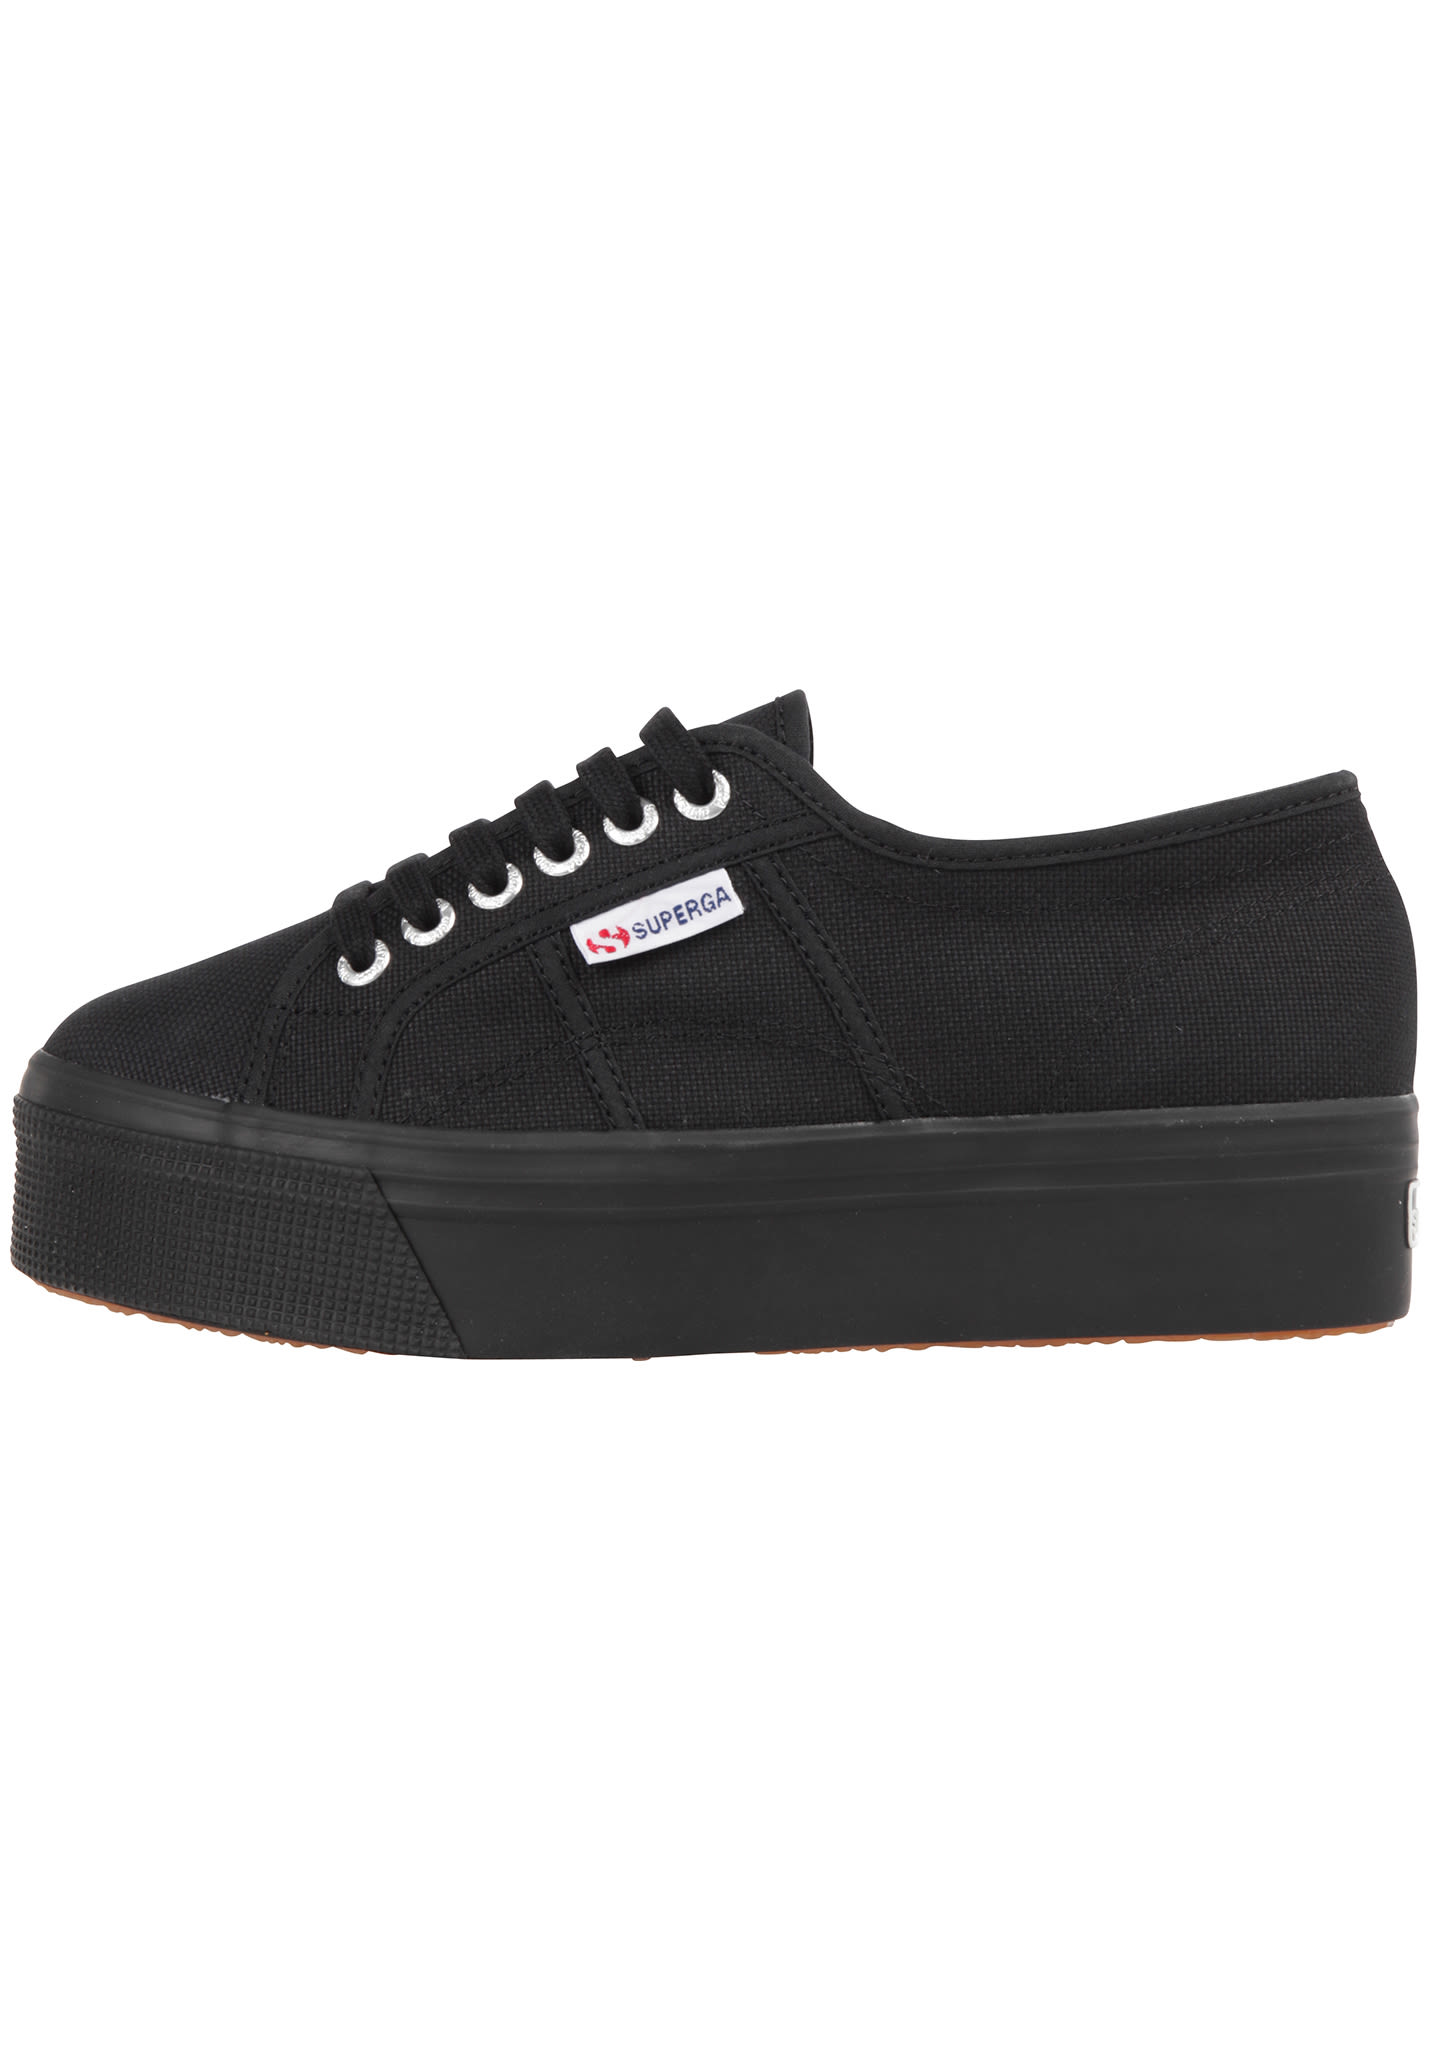 Superga Sneakers nere da donna Superga 2790 Cotu Up Down